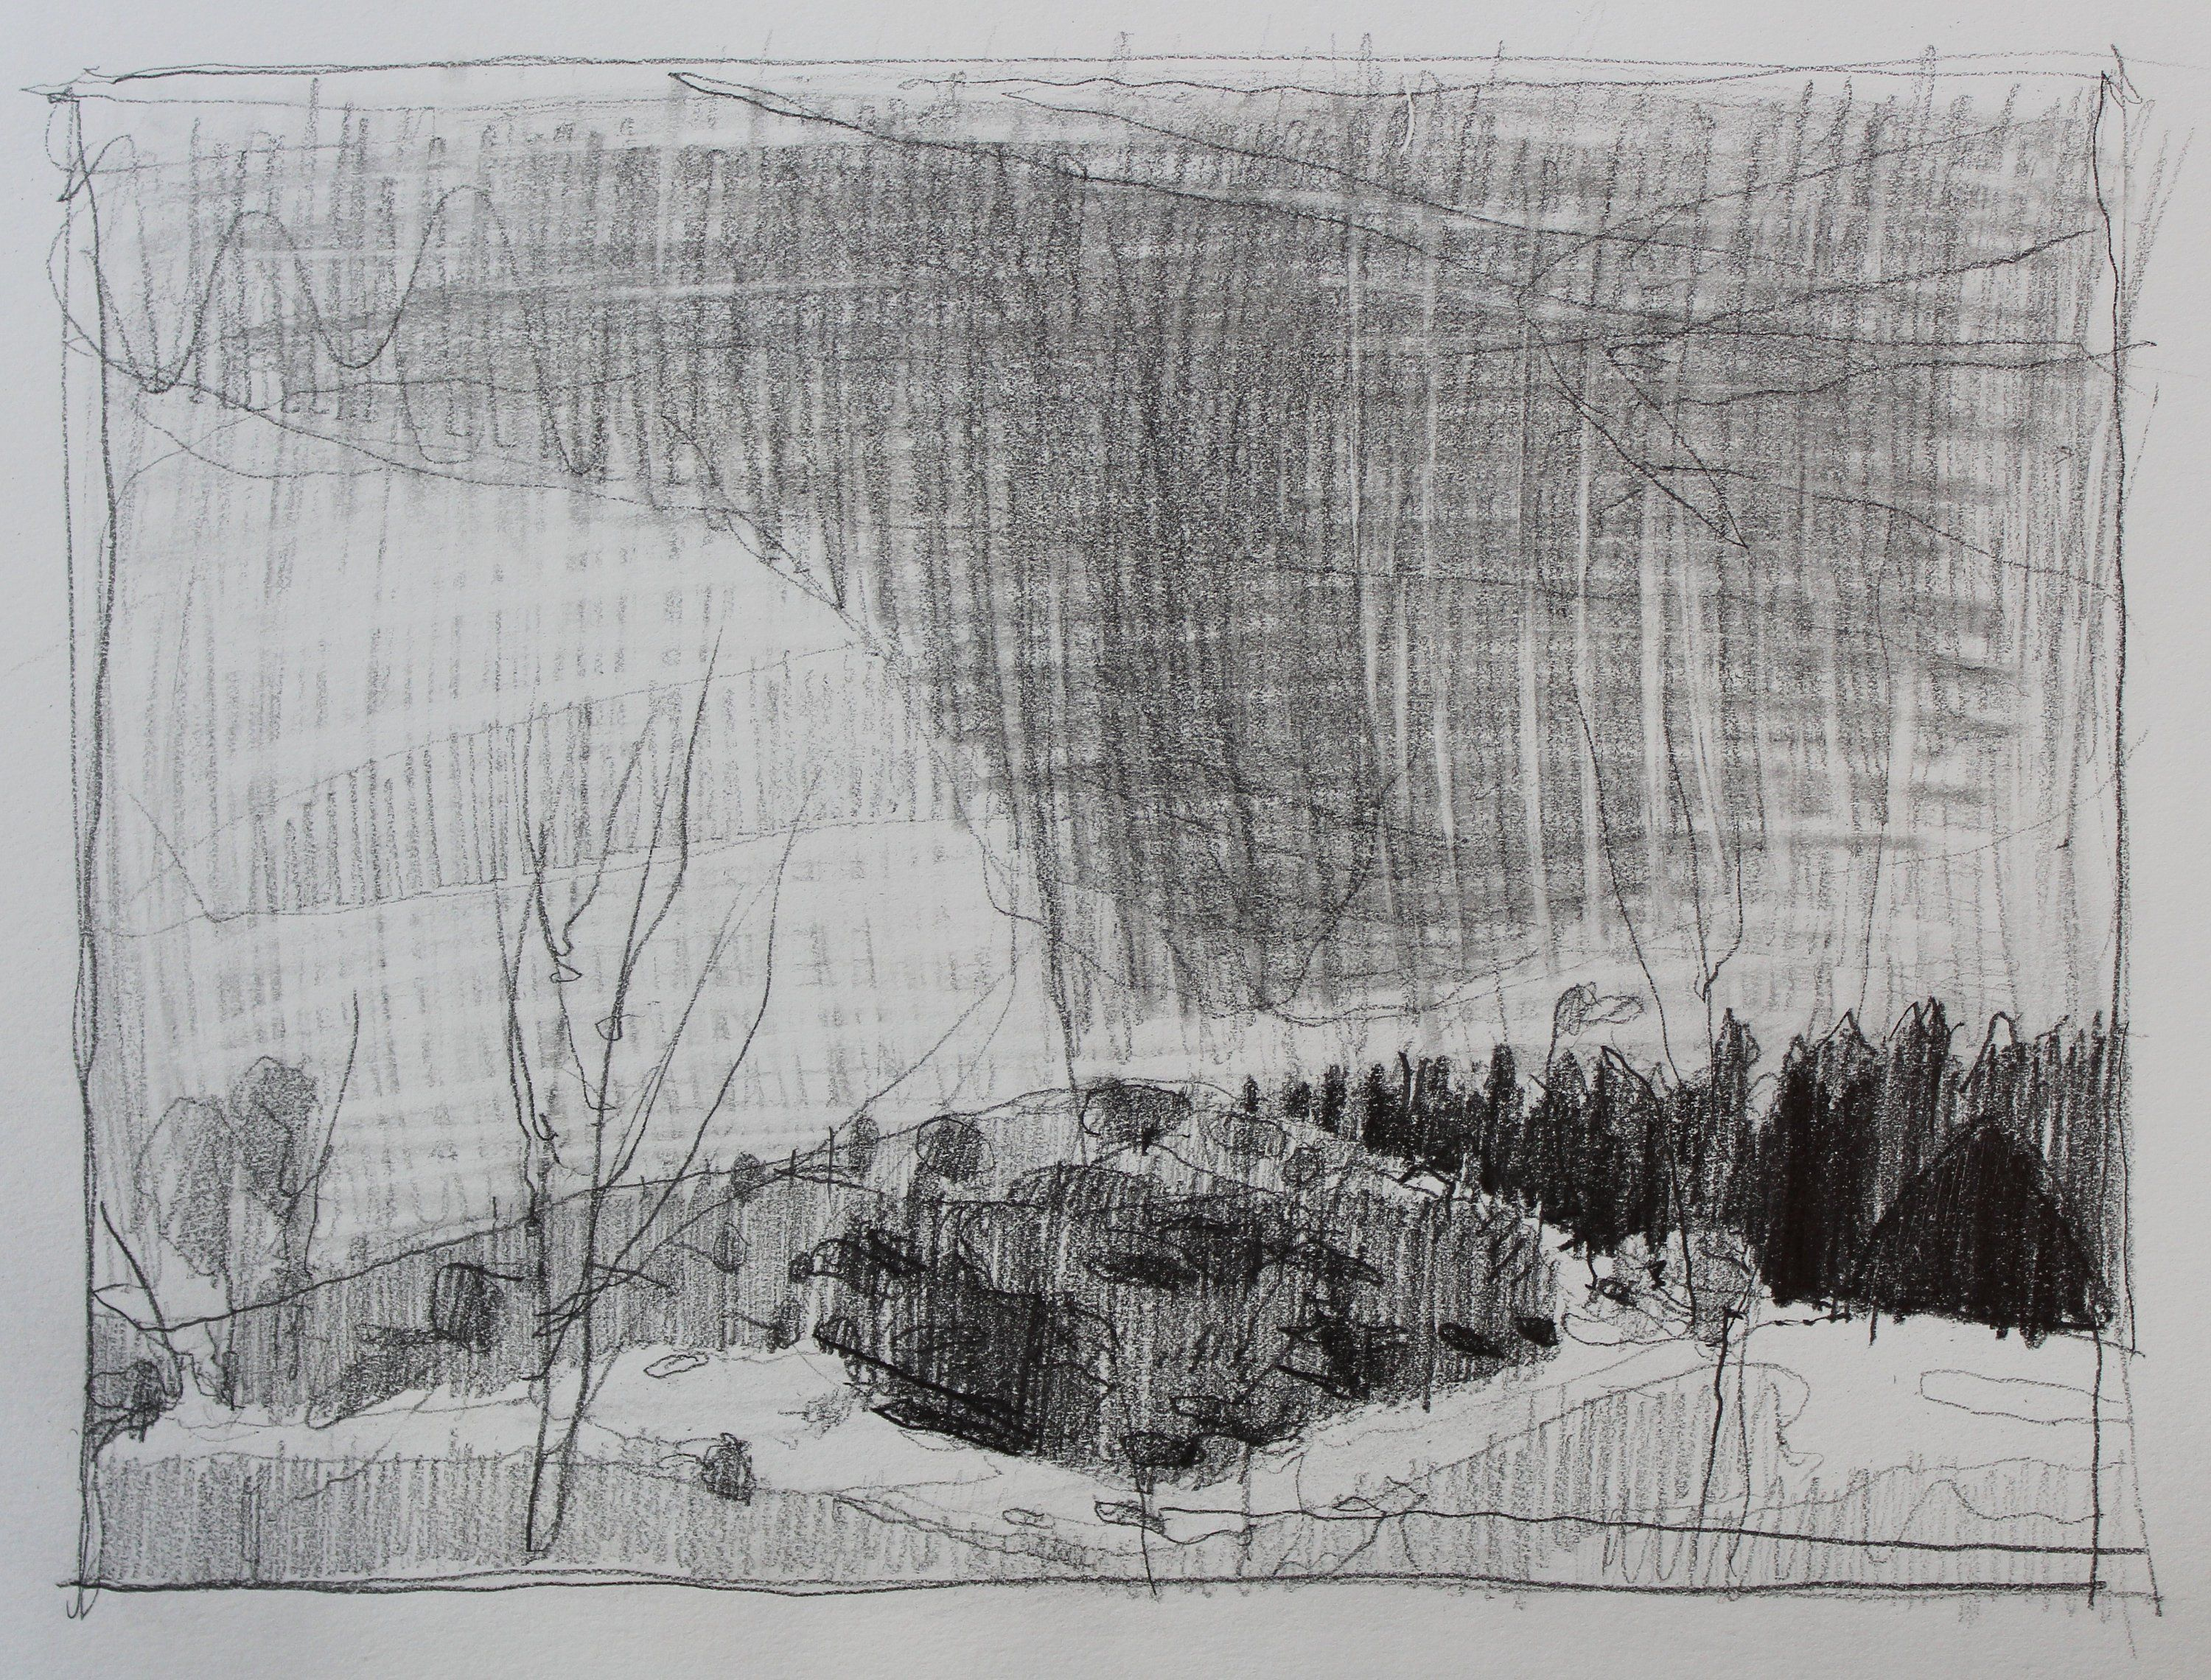 Original Spring Plein Air Landscape Pencil Drawing 11 X 15 Inches Free Shipping Stooshinoff Wendy S Plein Air Landscape Landscape Pencil Drawings Plein Air